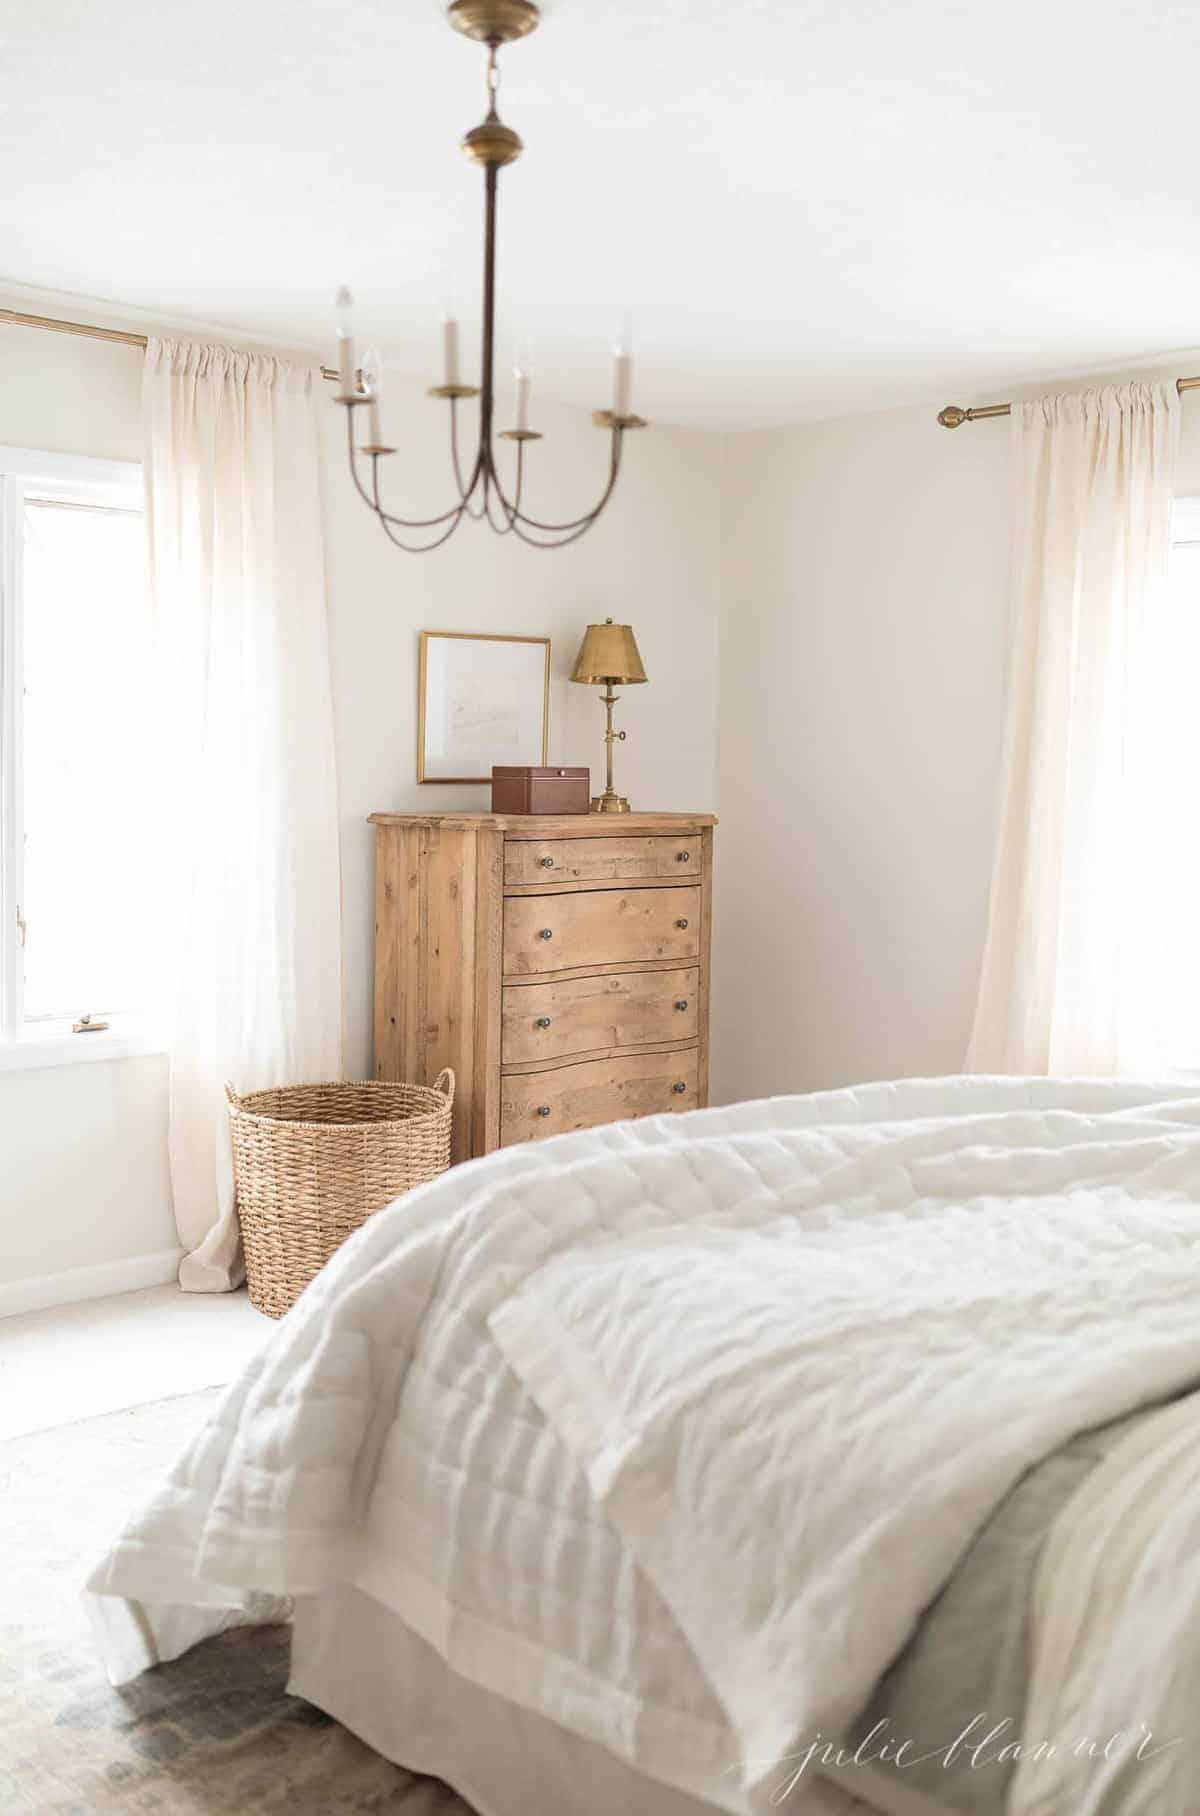 Simple white bedroom with a wooden dresser